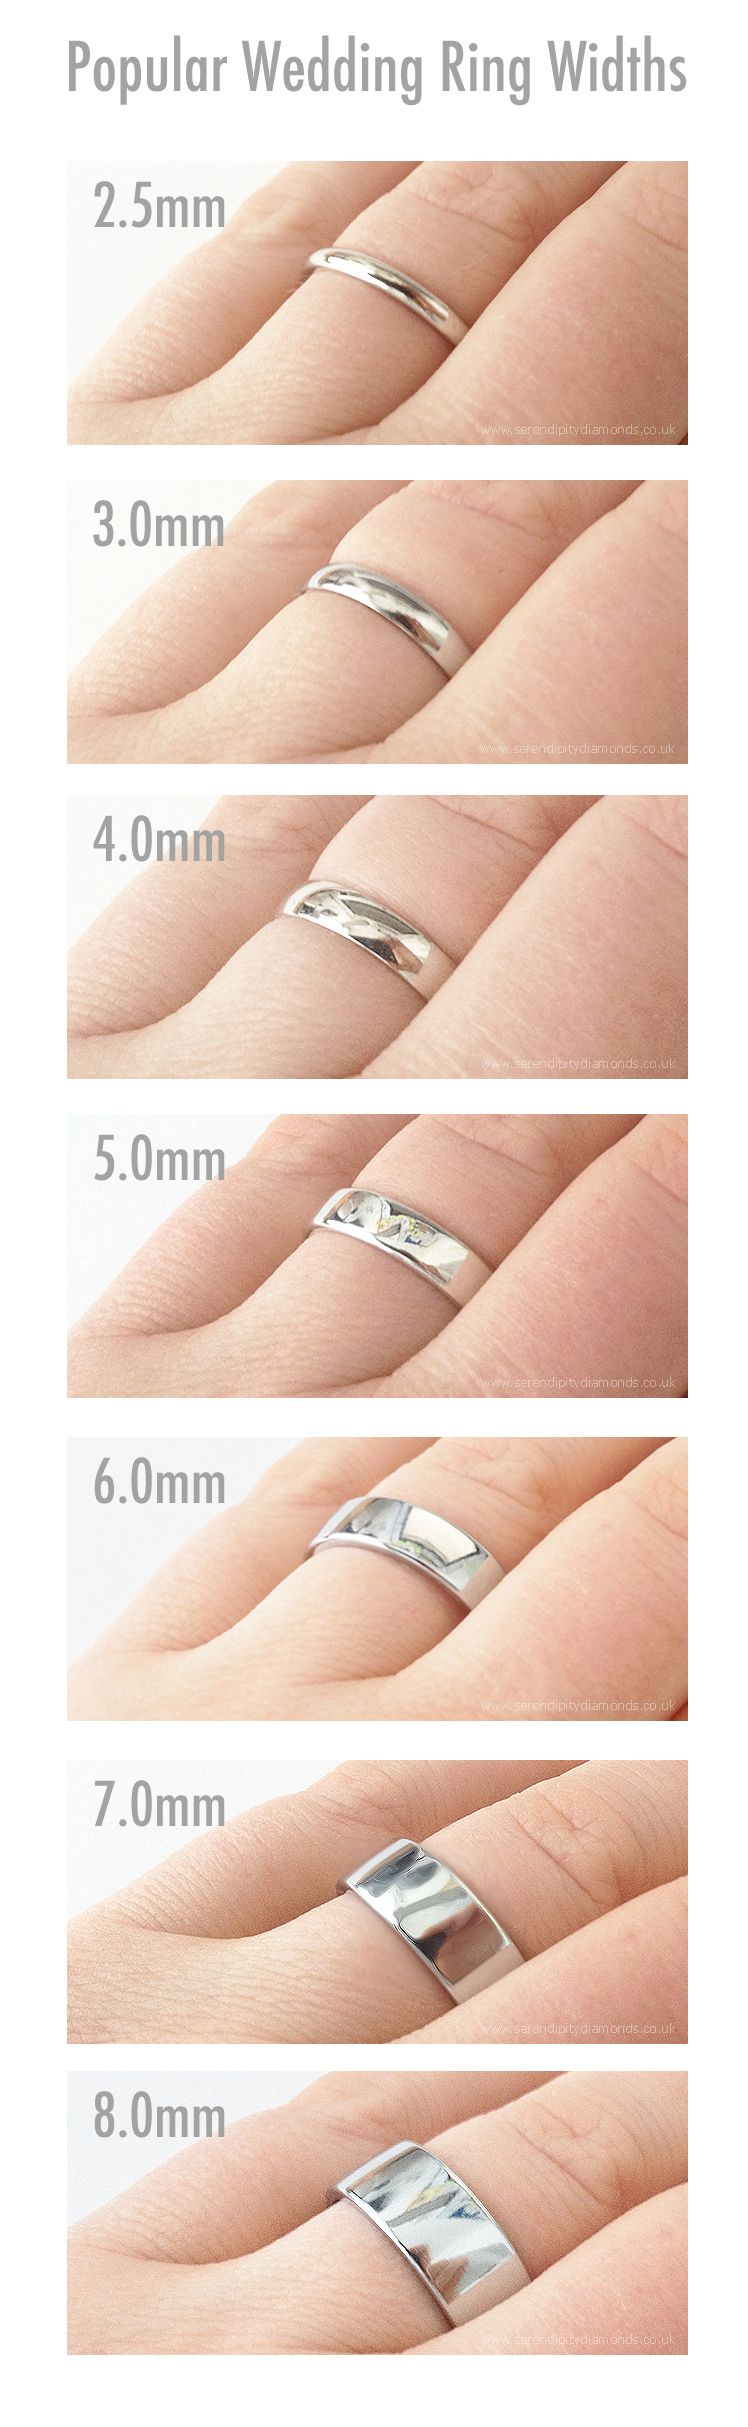 Explore Wedding Ring Bands, Wedding Ring Designs, And More!